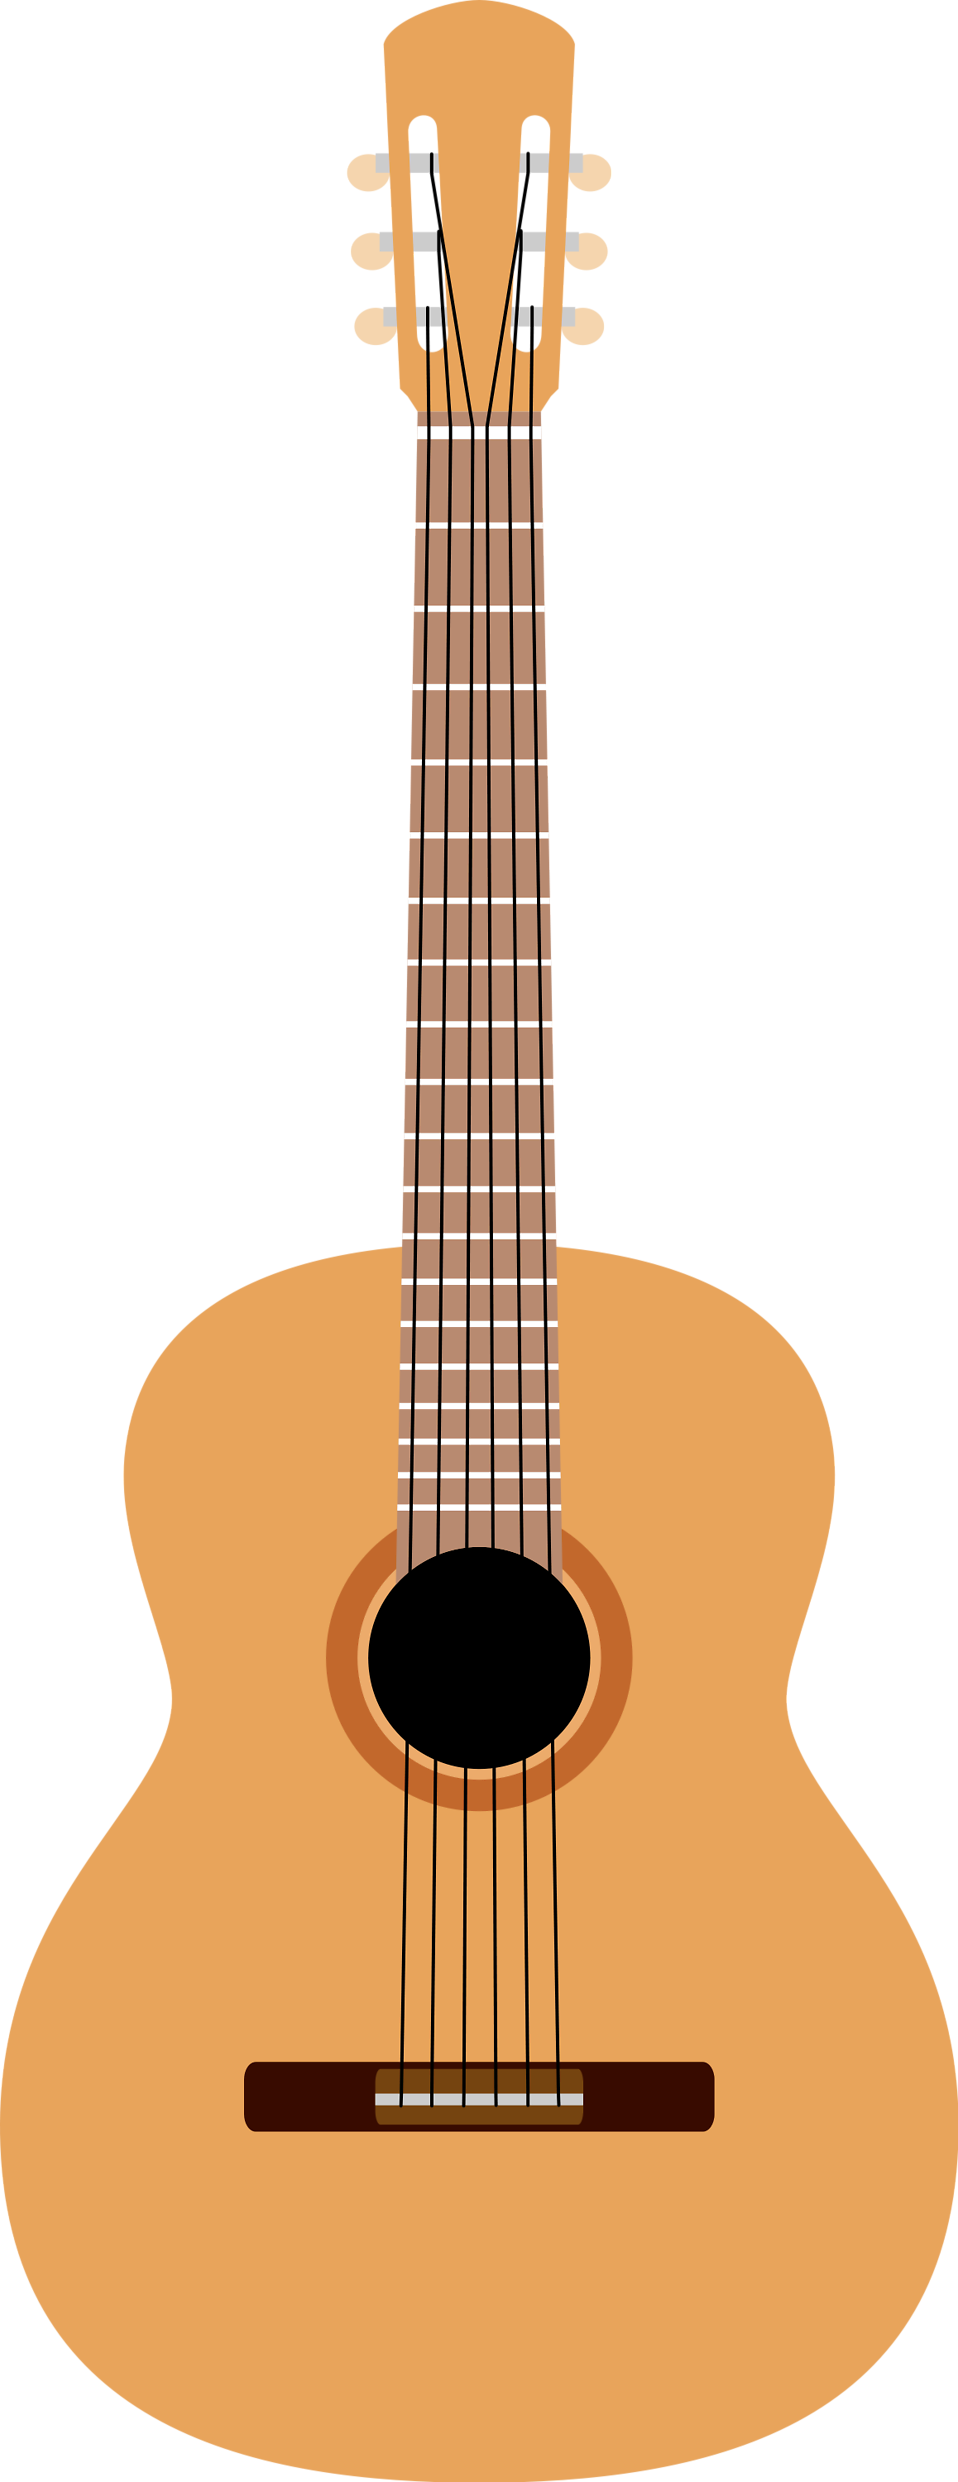 Illustration of an acoustic guitar : Free Stock Photo